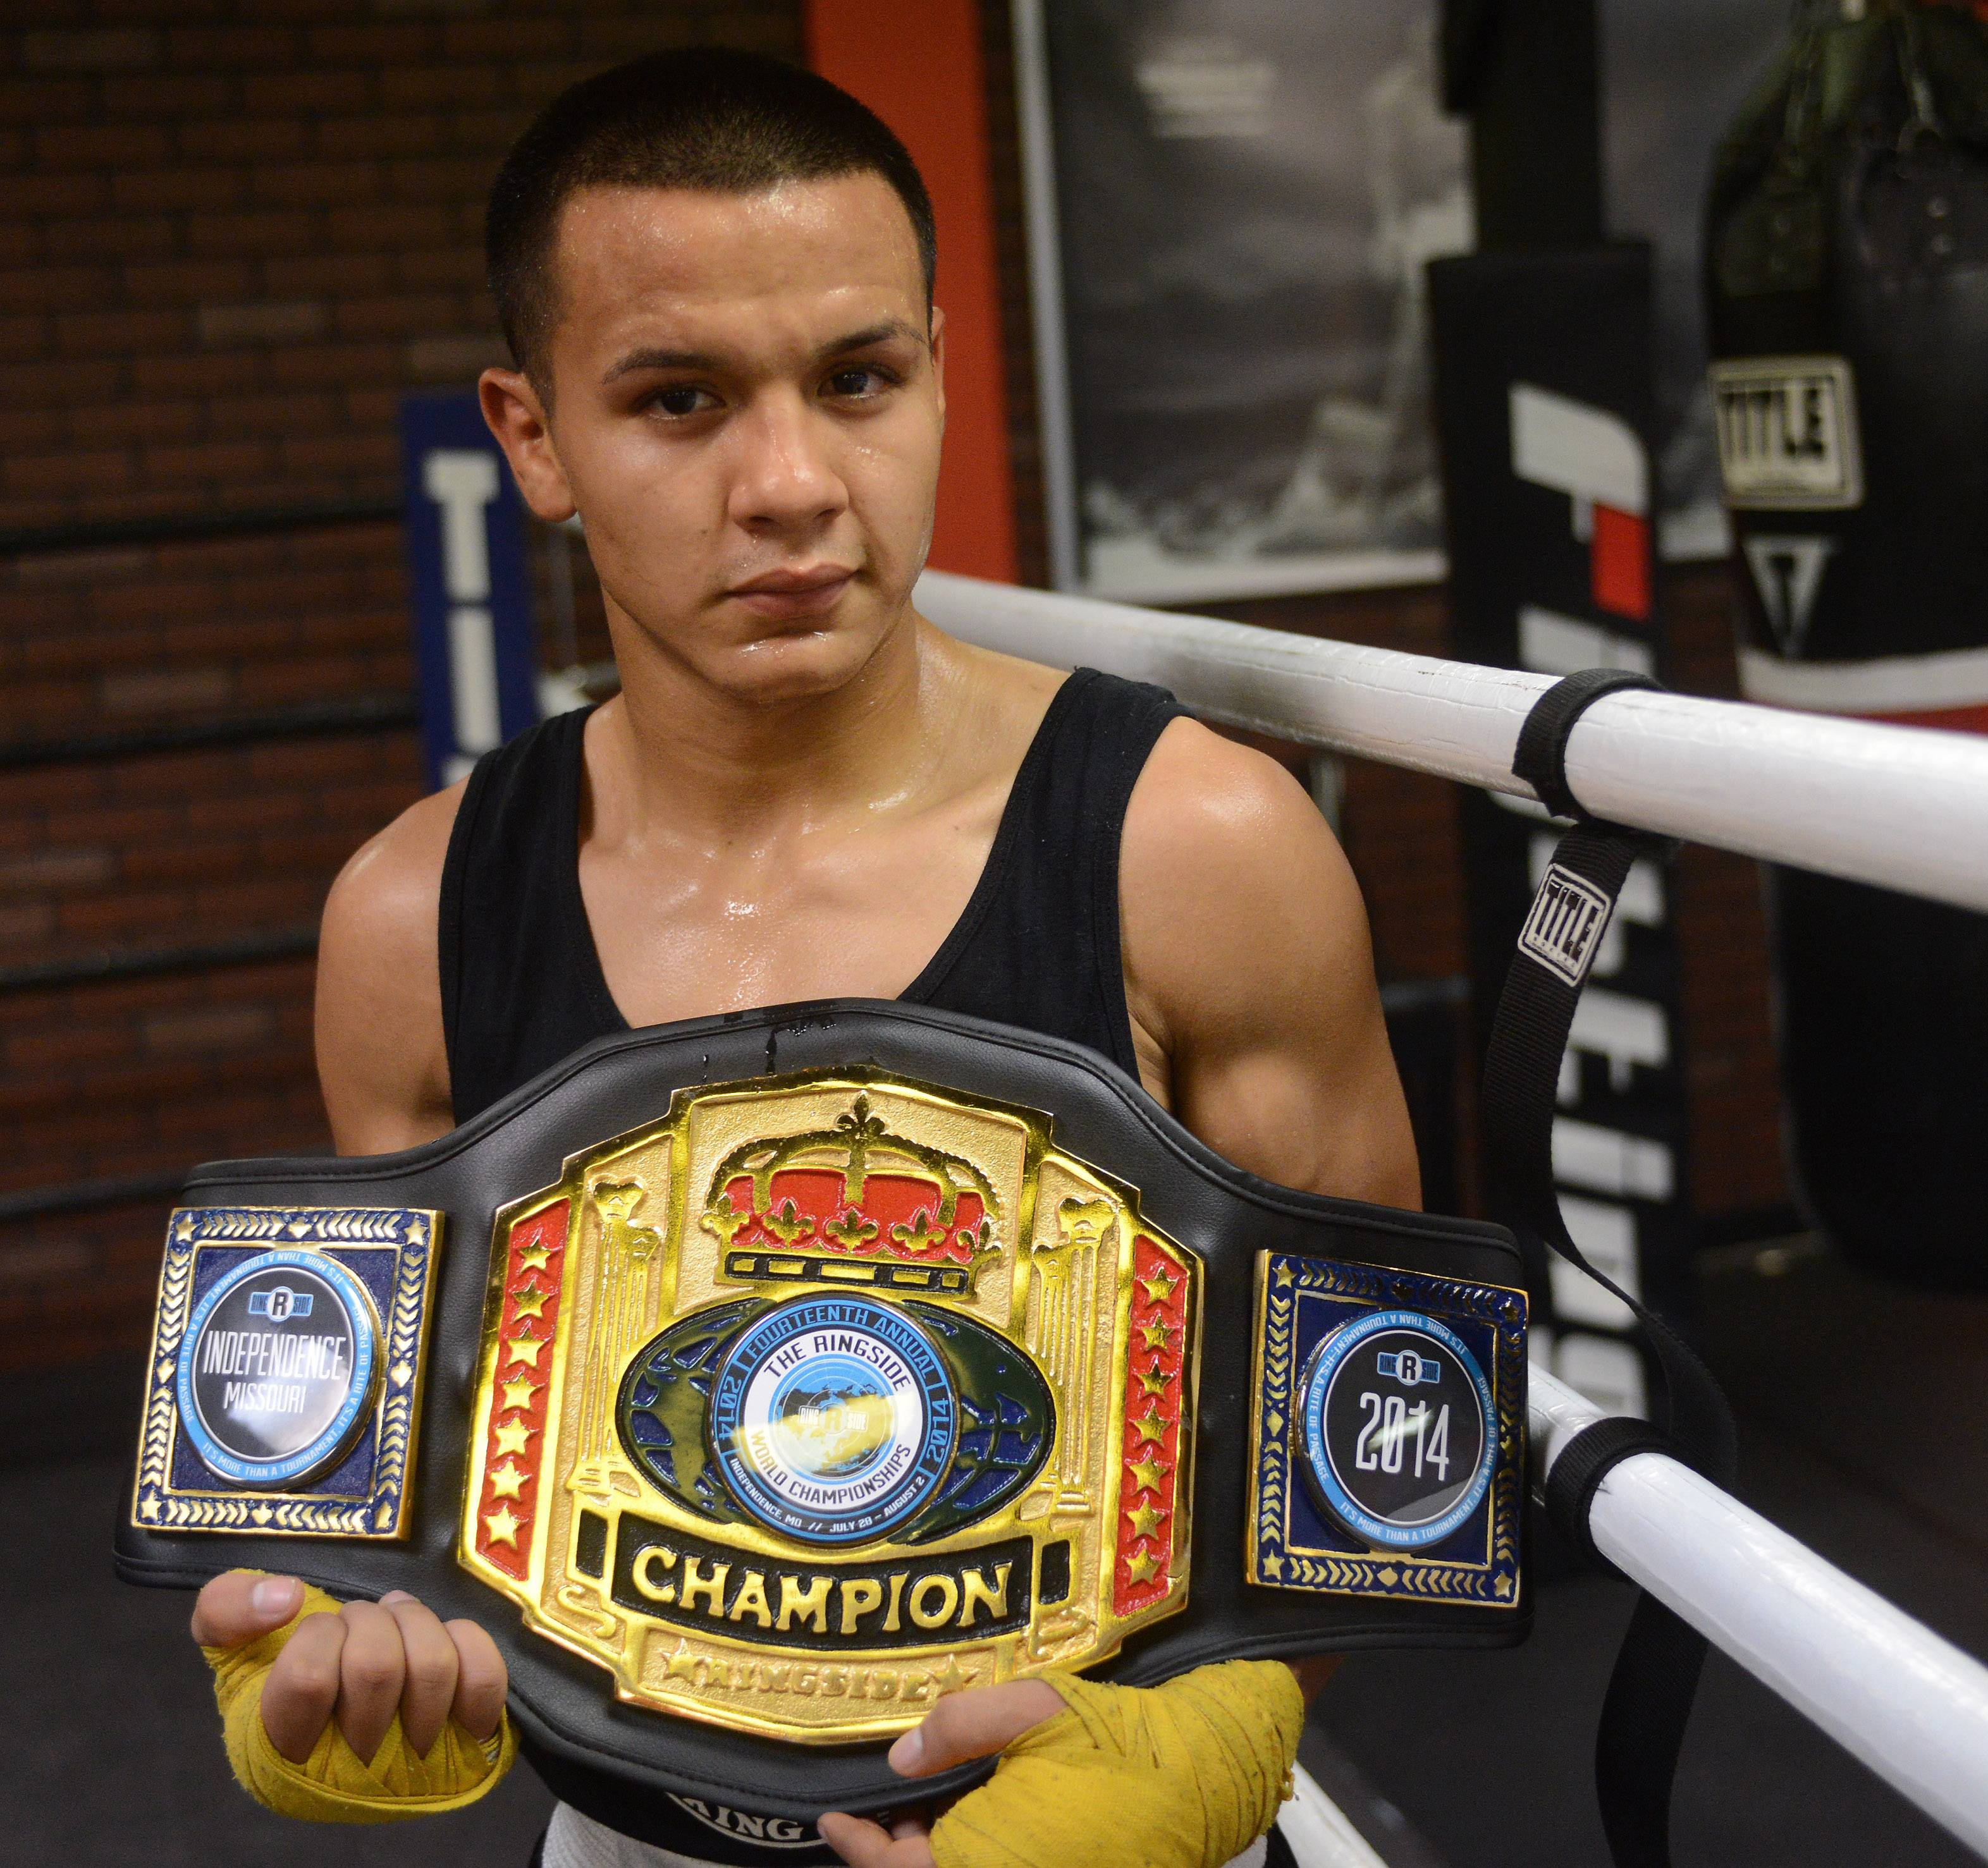 Javier Rivera, 19, won a title at the 14th annual Ringside World Championships in Missouri. This is the biggest title of his amateur boxing career, which boasts a 29-2 record.